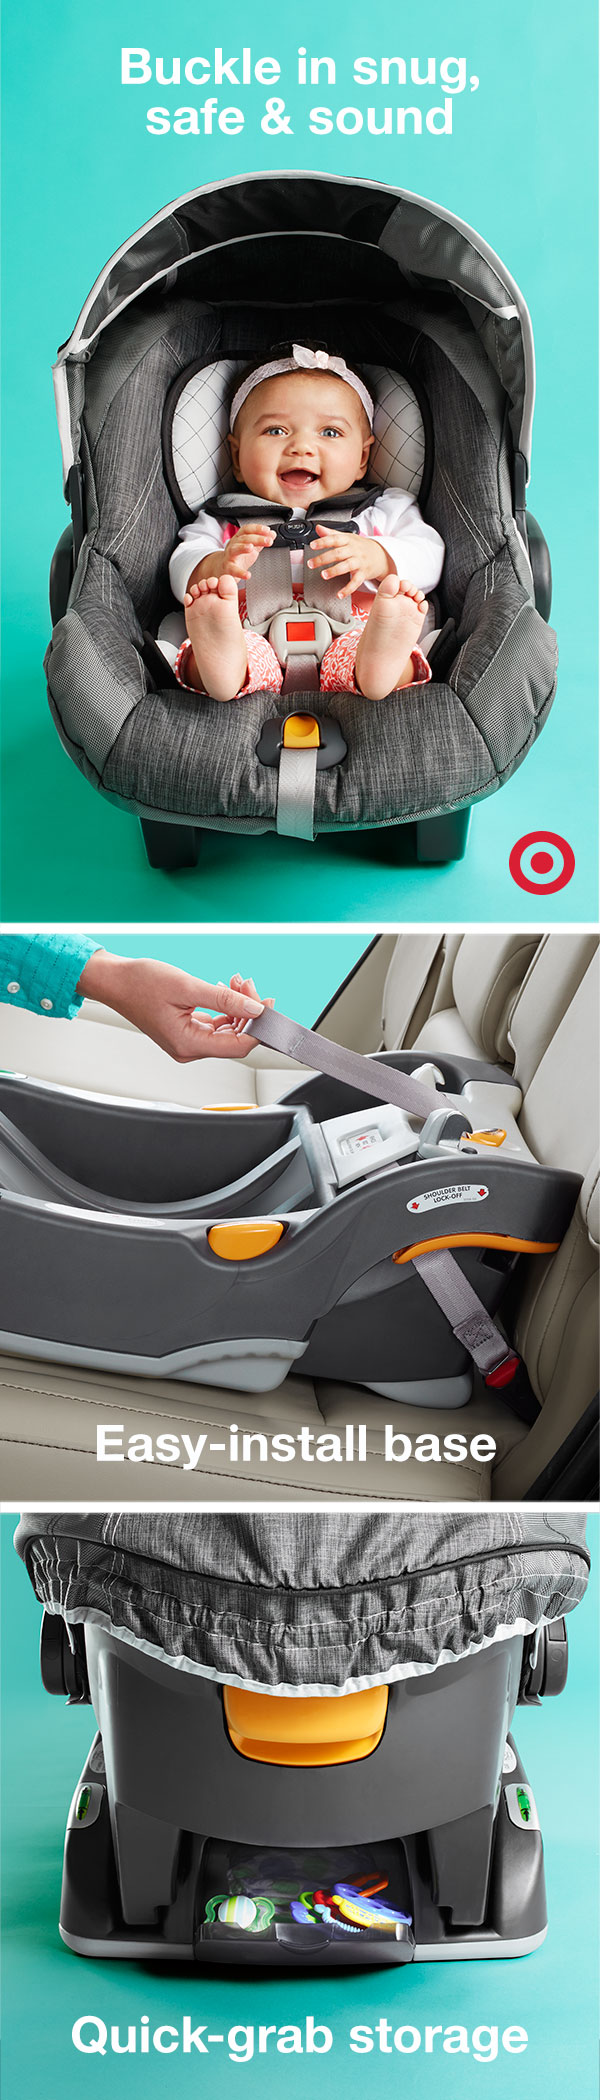 Hit the road in style with the Chicco KeyFit 30 infant car